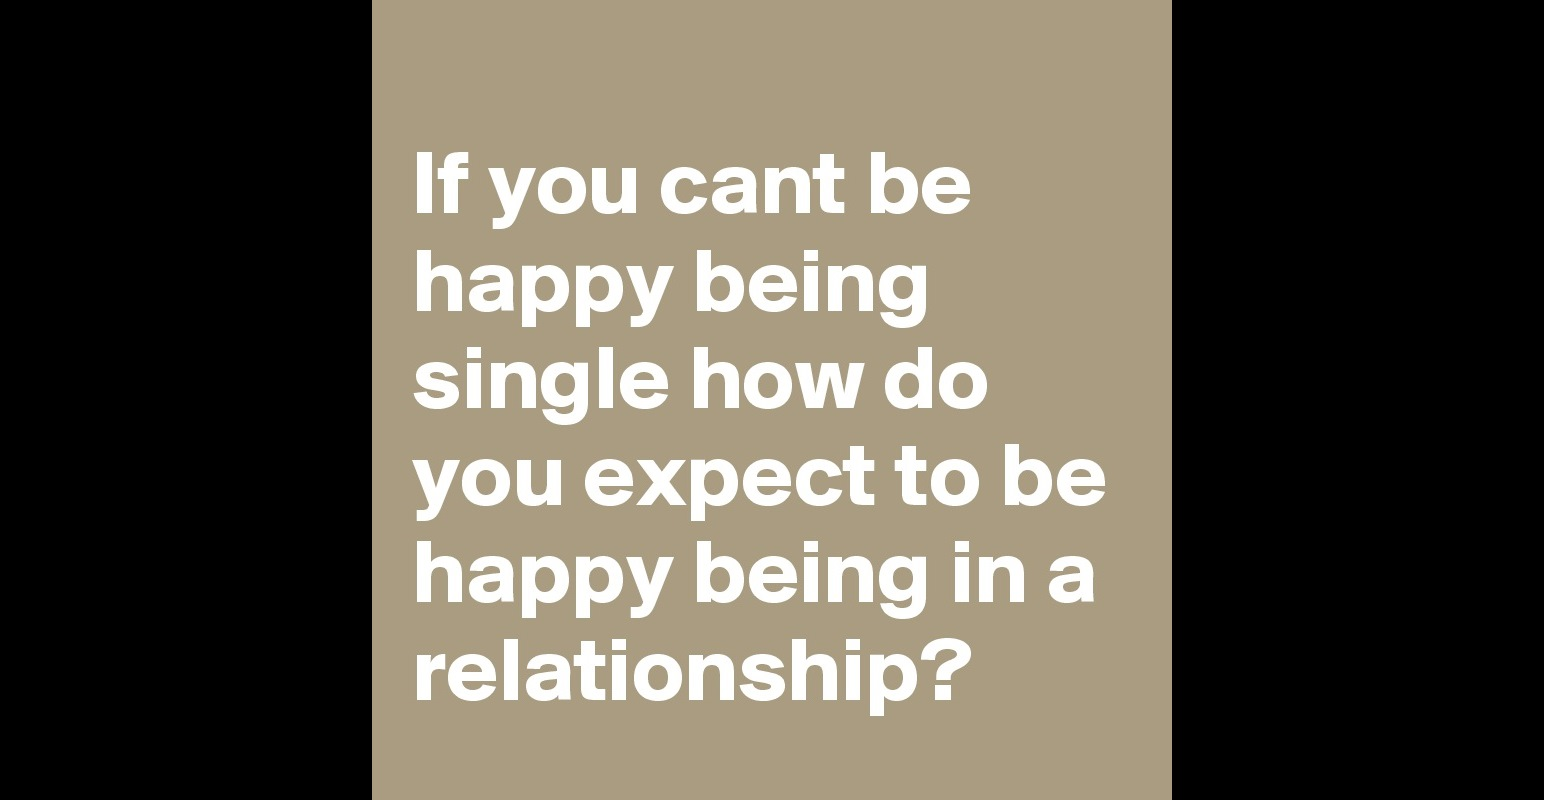 If You Cant Be Happy Being Single How Do You Expect To Be Happy Being In